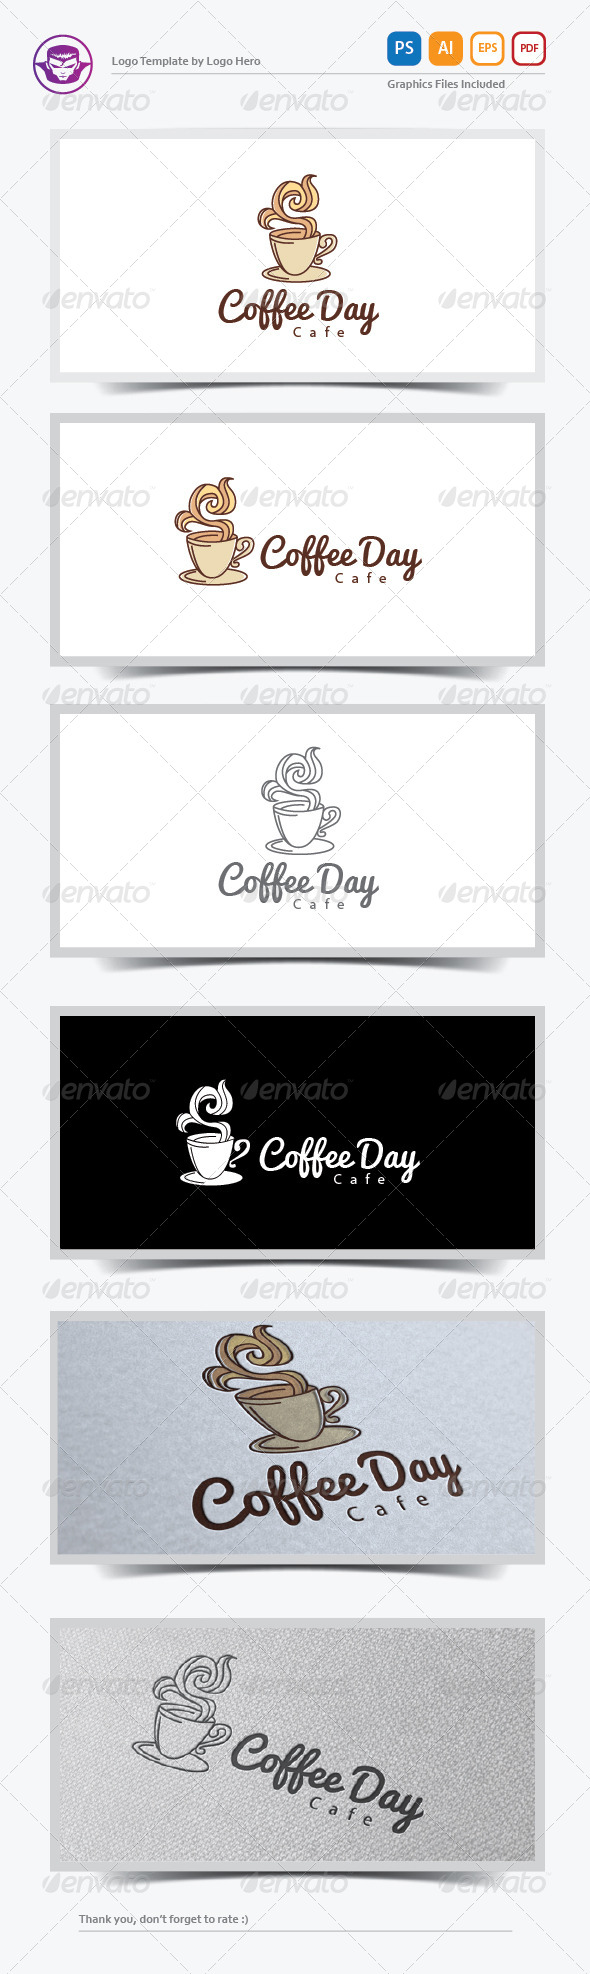 GraphicRiver Coffee Day Logo Template 7911292